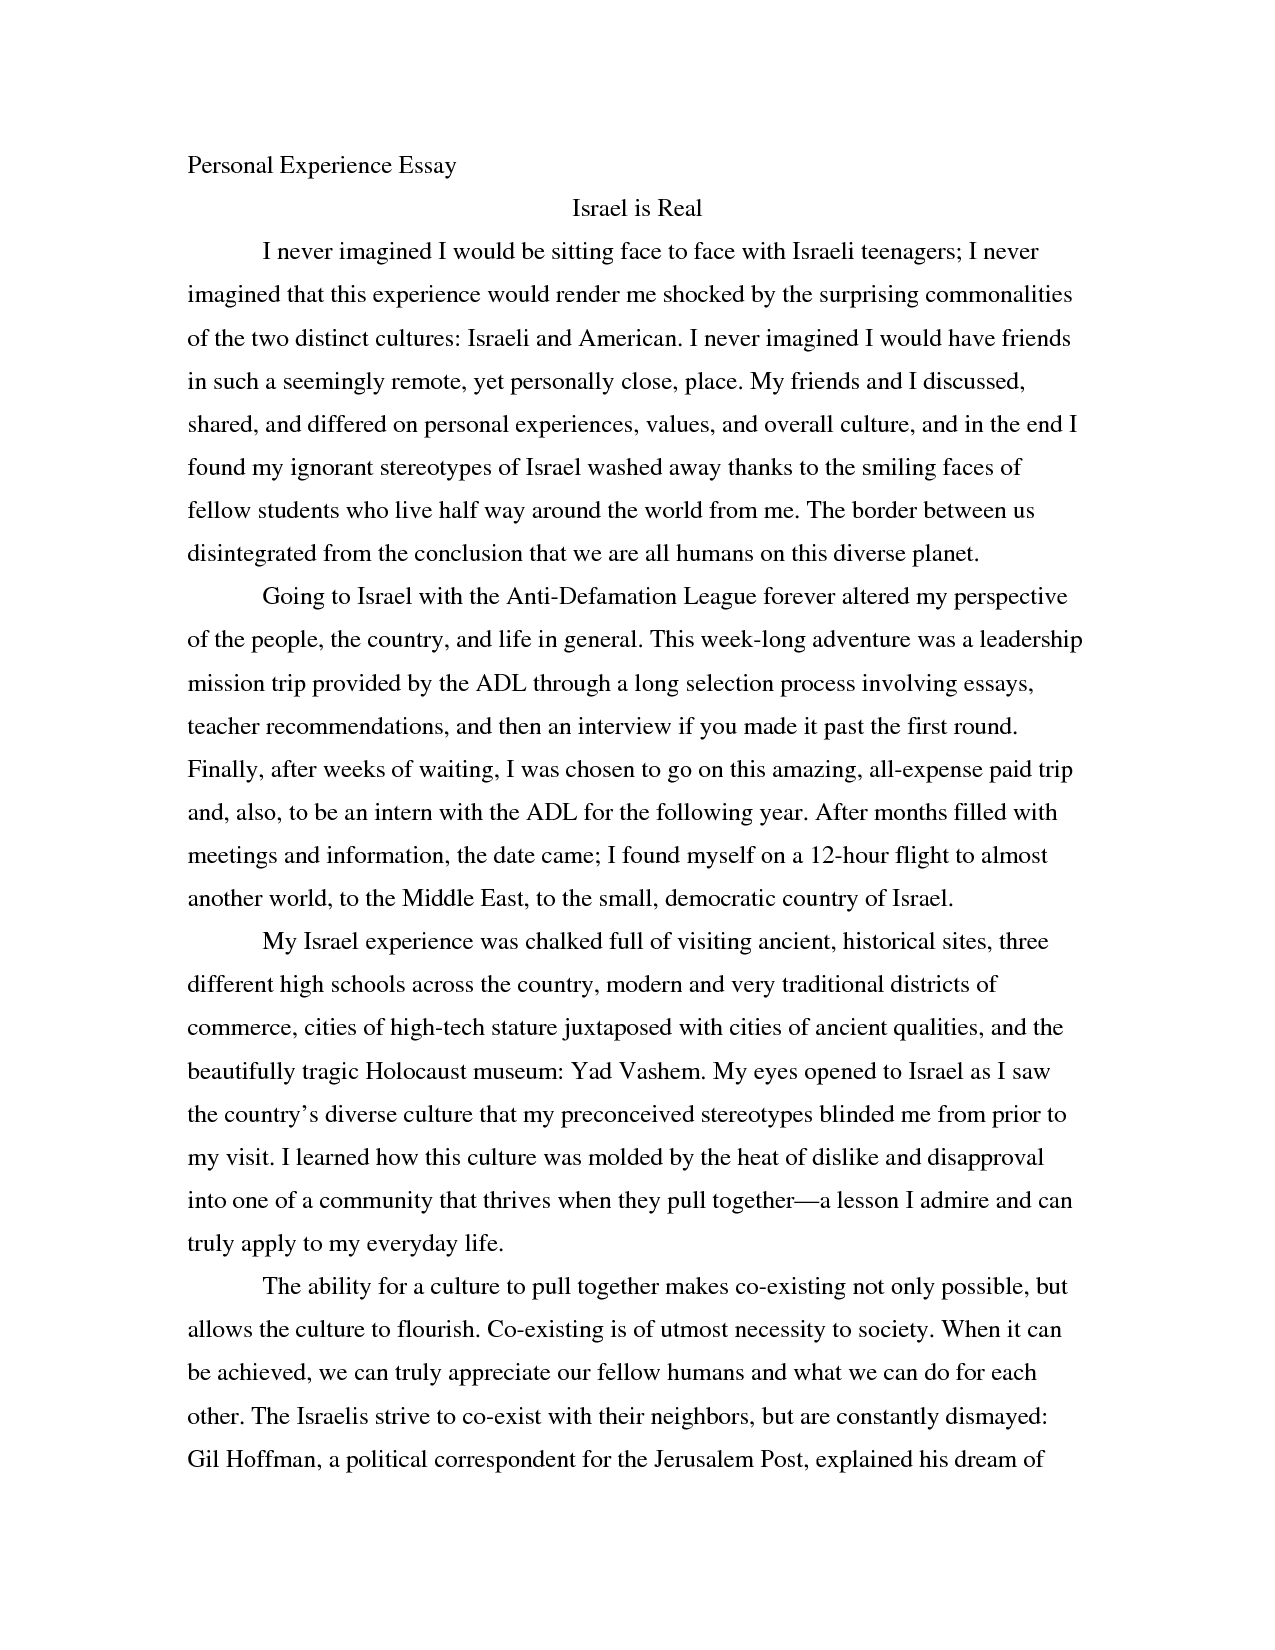 narrative essay about personal experience example topics how   narrative essay about personal experience example topics how write vsu  cecq life changing ideas